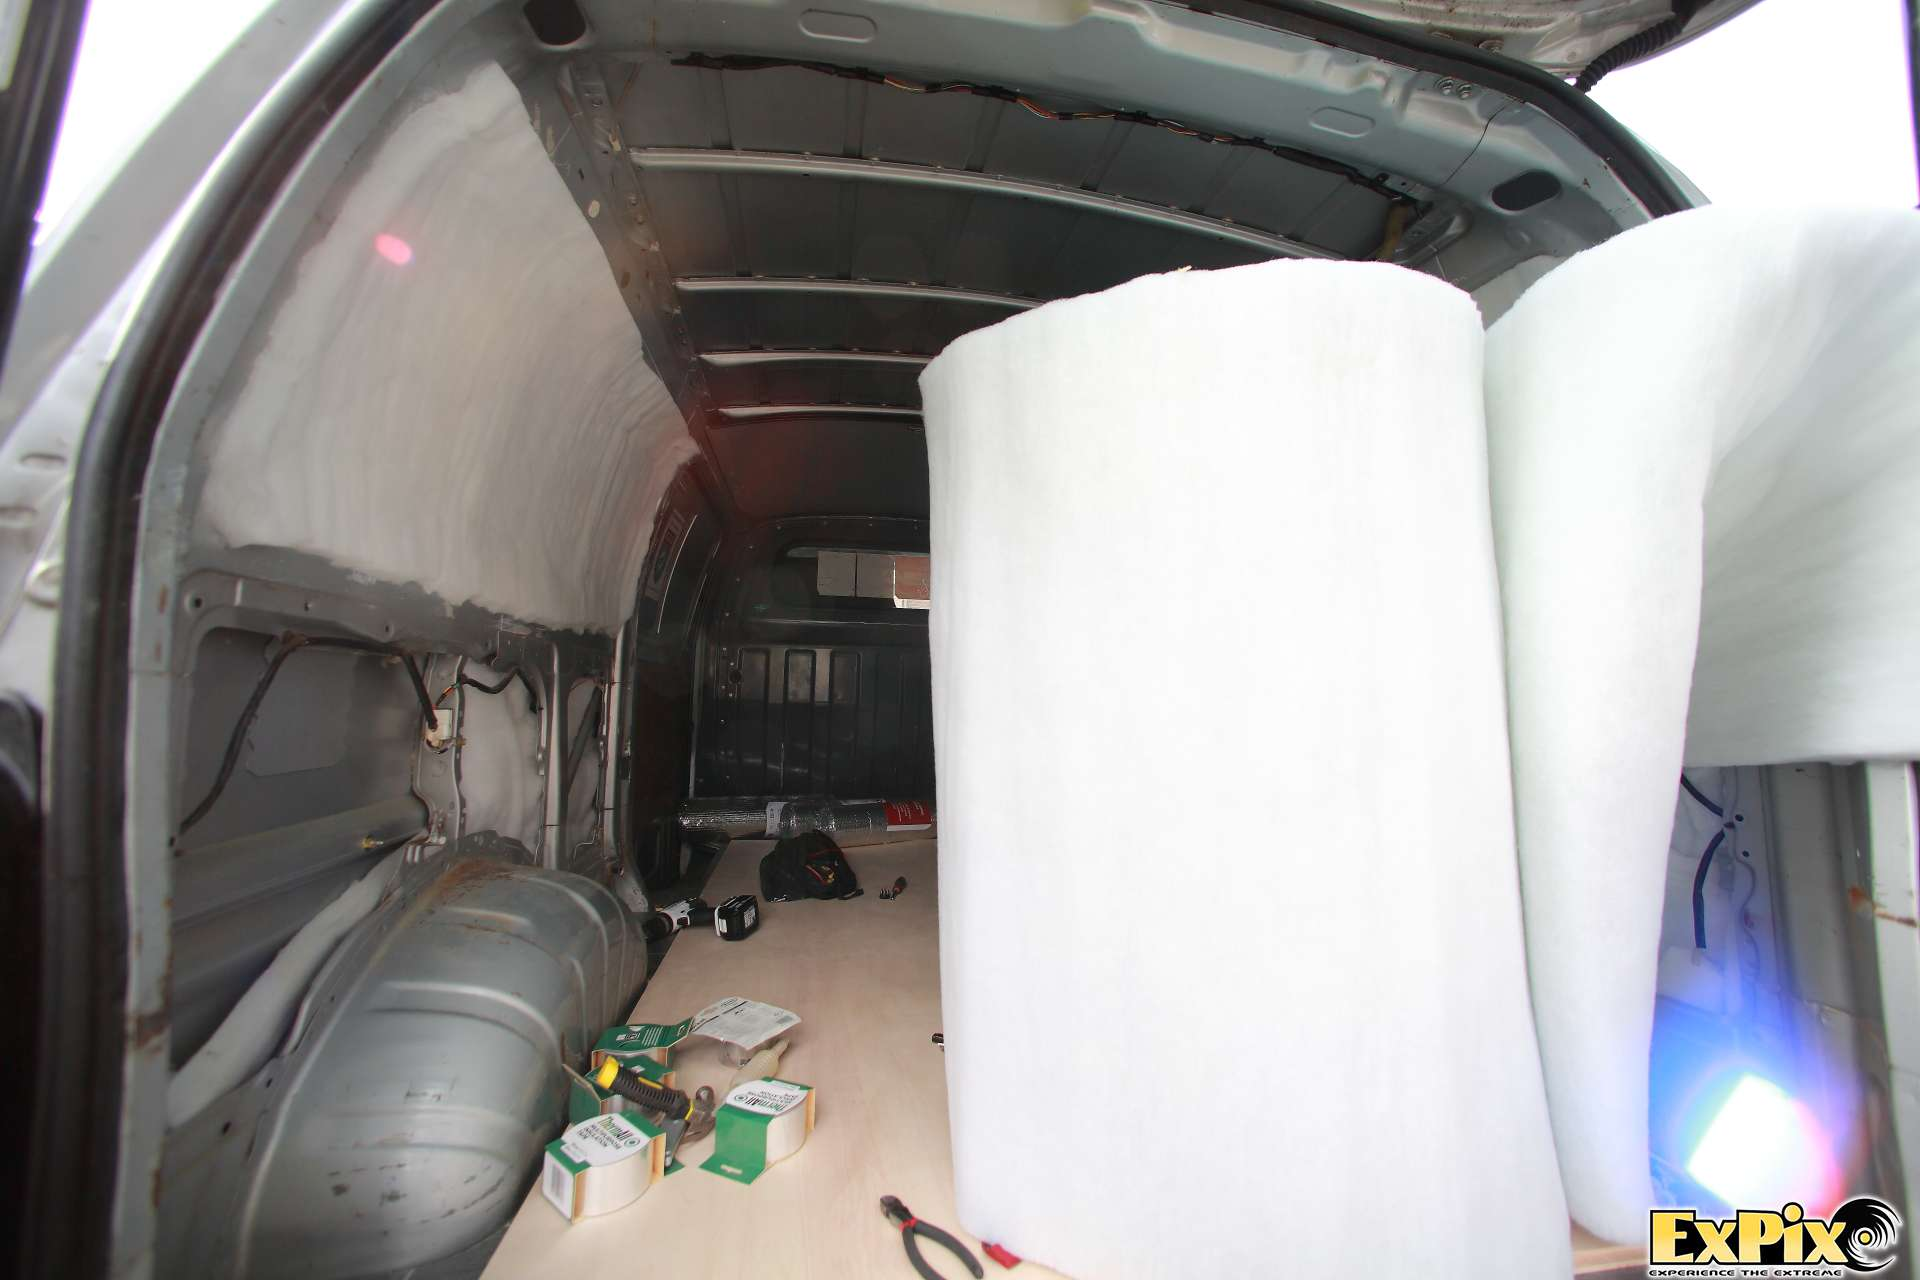 Dacron Thermal insulation for the ExPix Van